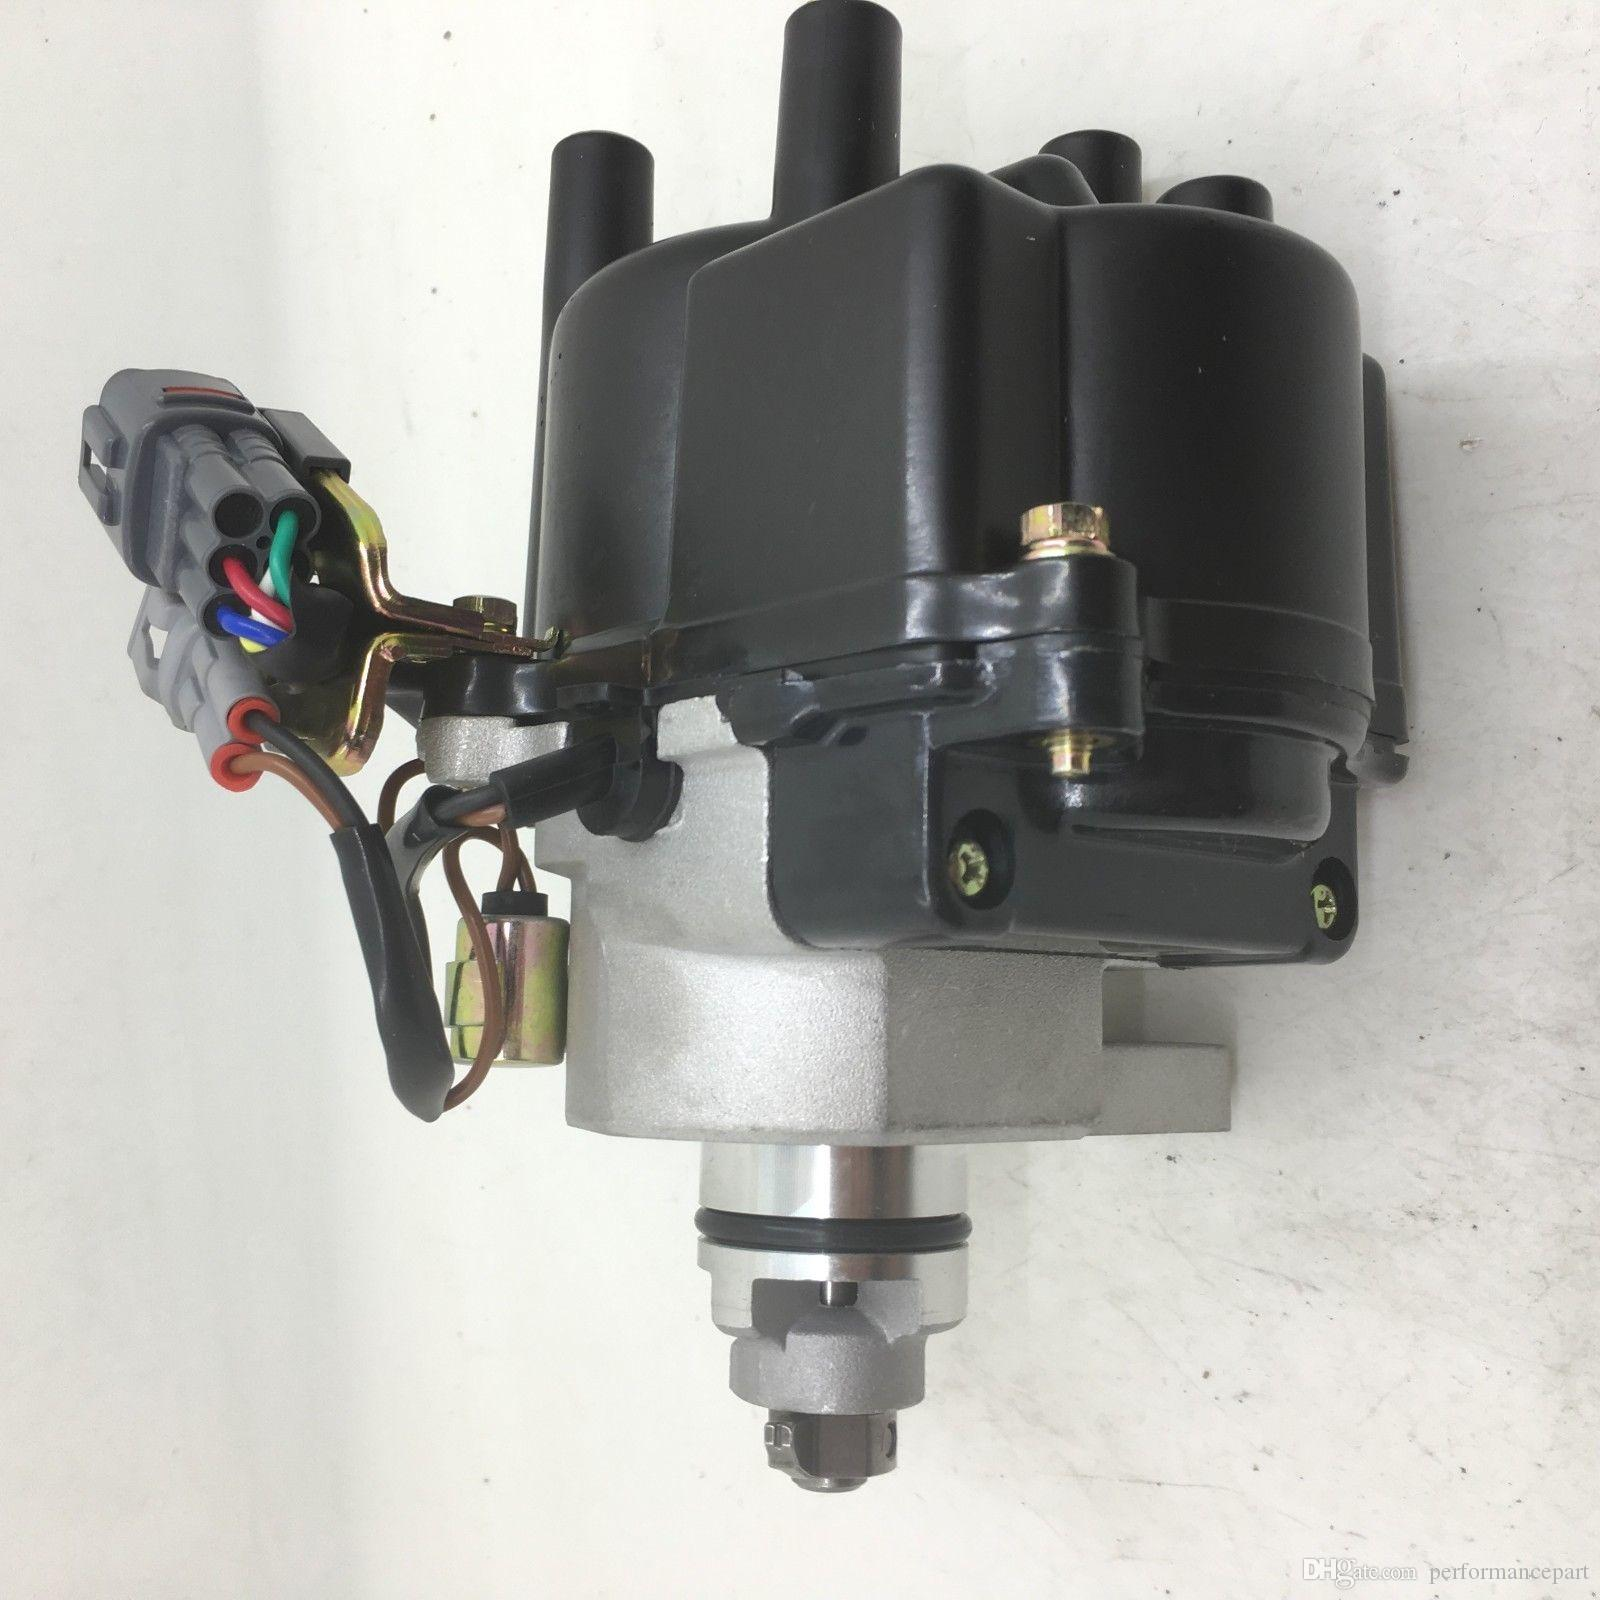 hight resolution of 2019 oem ignition distributor for toyota celica corolla 1990 1993 geo prizm 1 6l 4afe from performancepart 86 43 dhgate com